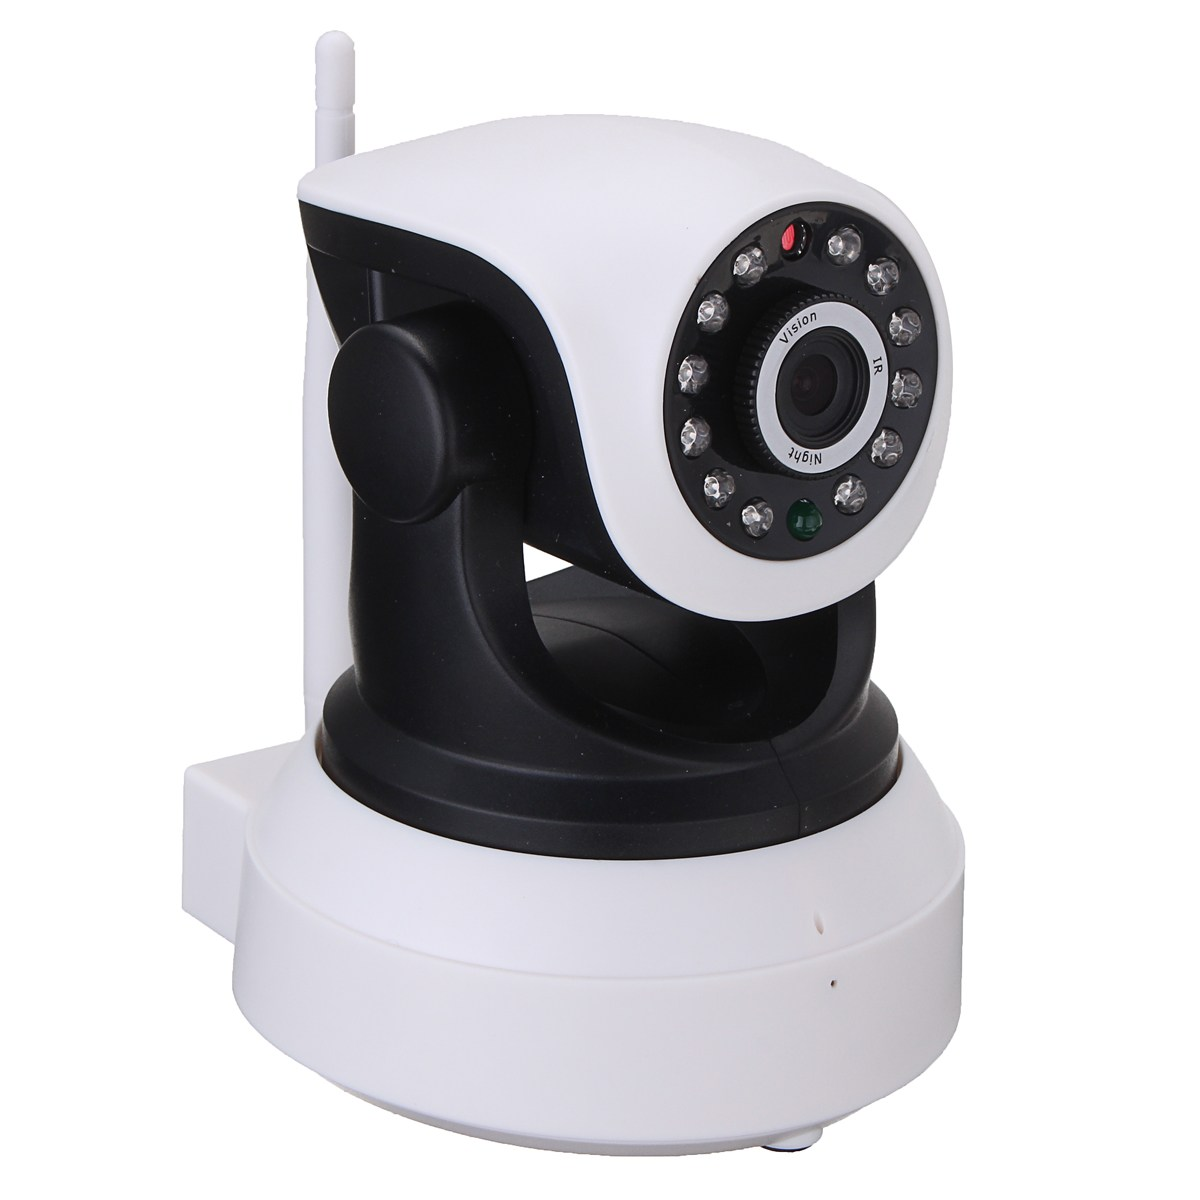 NEW Safurance Wireless IP Camera 720P Pan Tilt Network Security Night Vision WiFi Webcam Home Safety Surveillance safurance mini wireless network wifi ip camera security nanny night vision cam surveillance home security